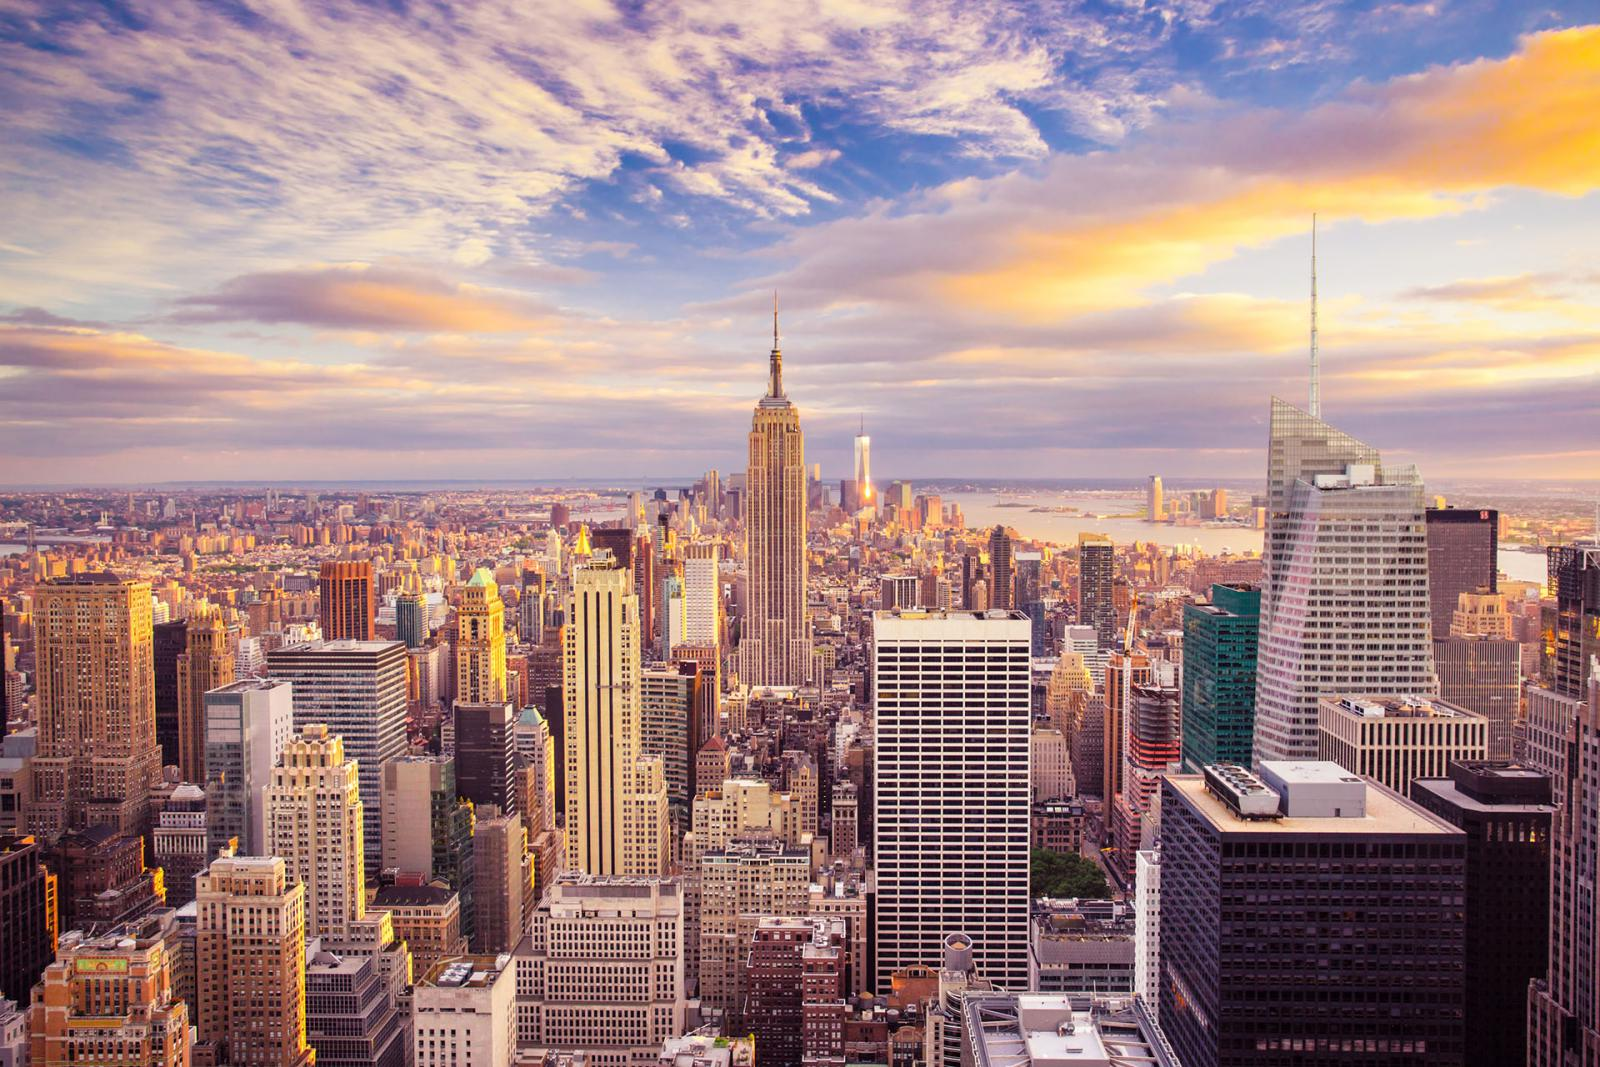 Fotolia_66358333_XL-Empire-State-Building-1600x1067